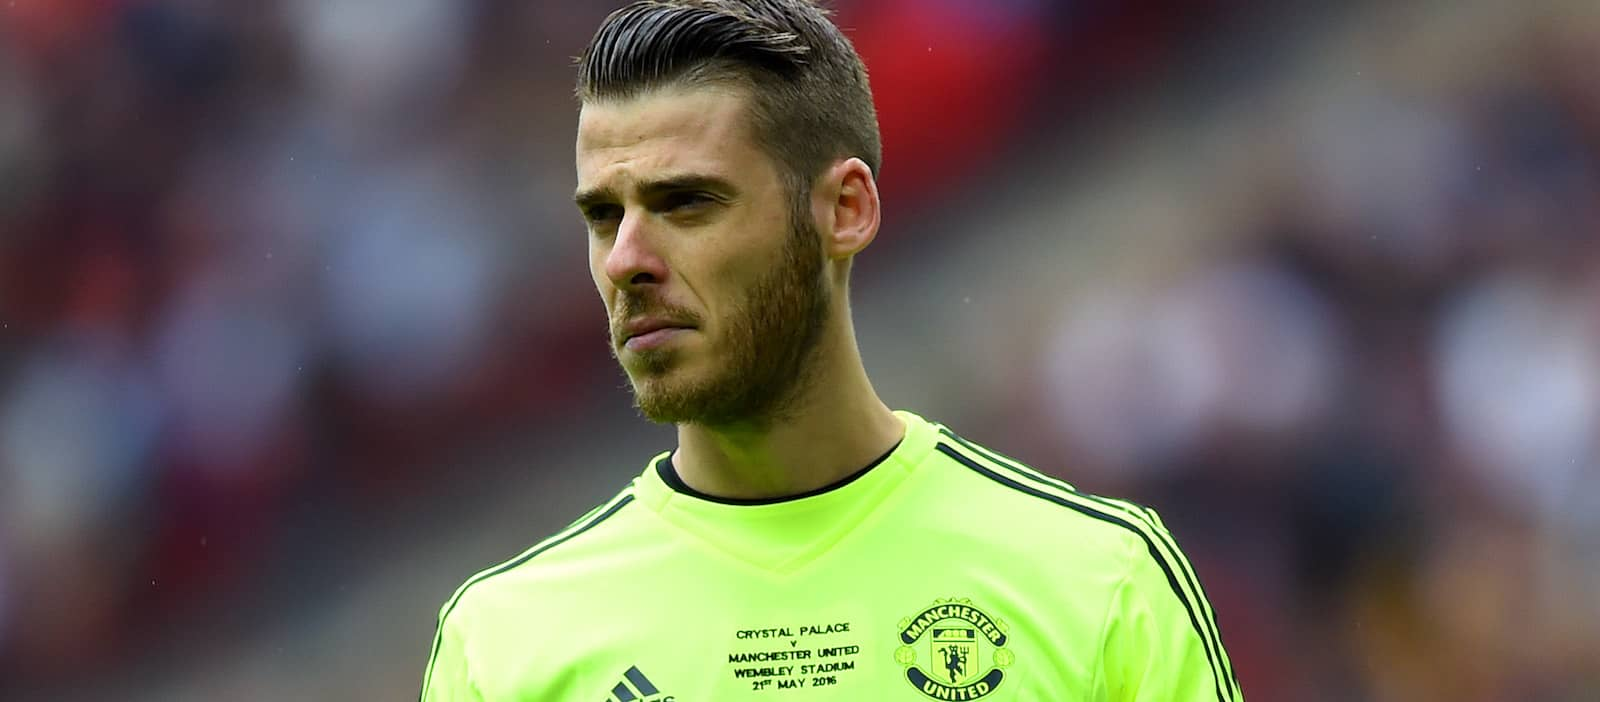 From Spain: David de Gea has ruled out moving to Real Madrid